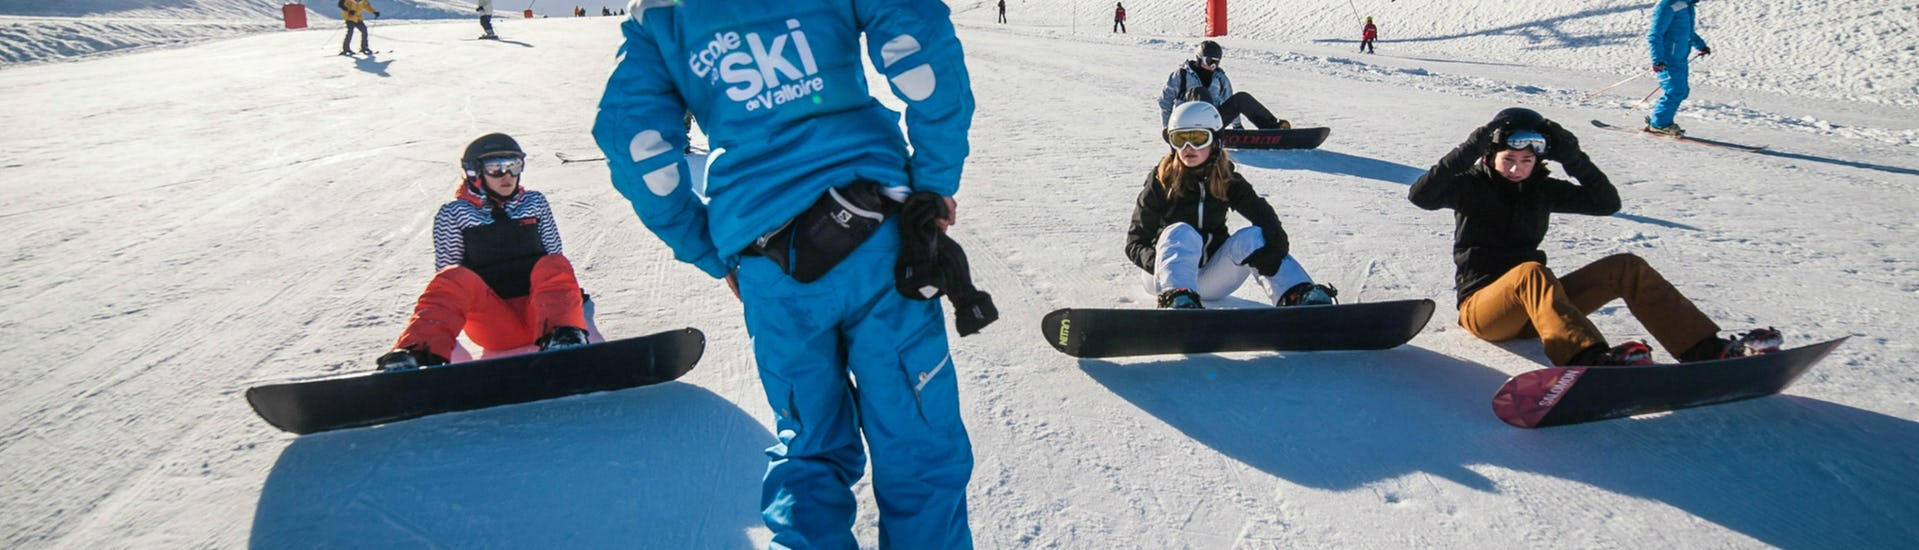 Snowboarding Lessons (from 10 years) - High Season -Beginner